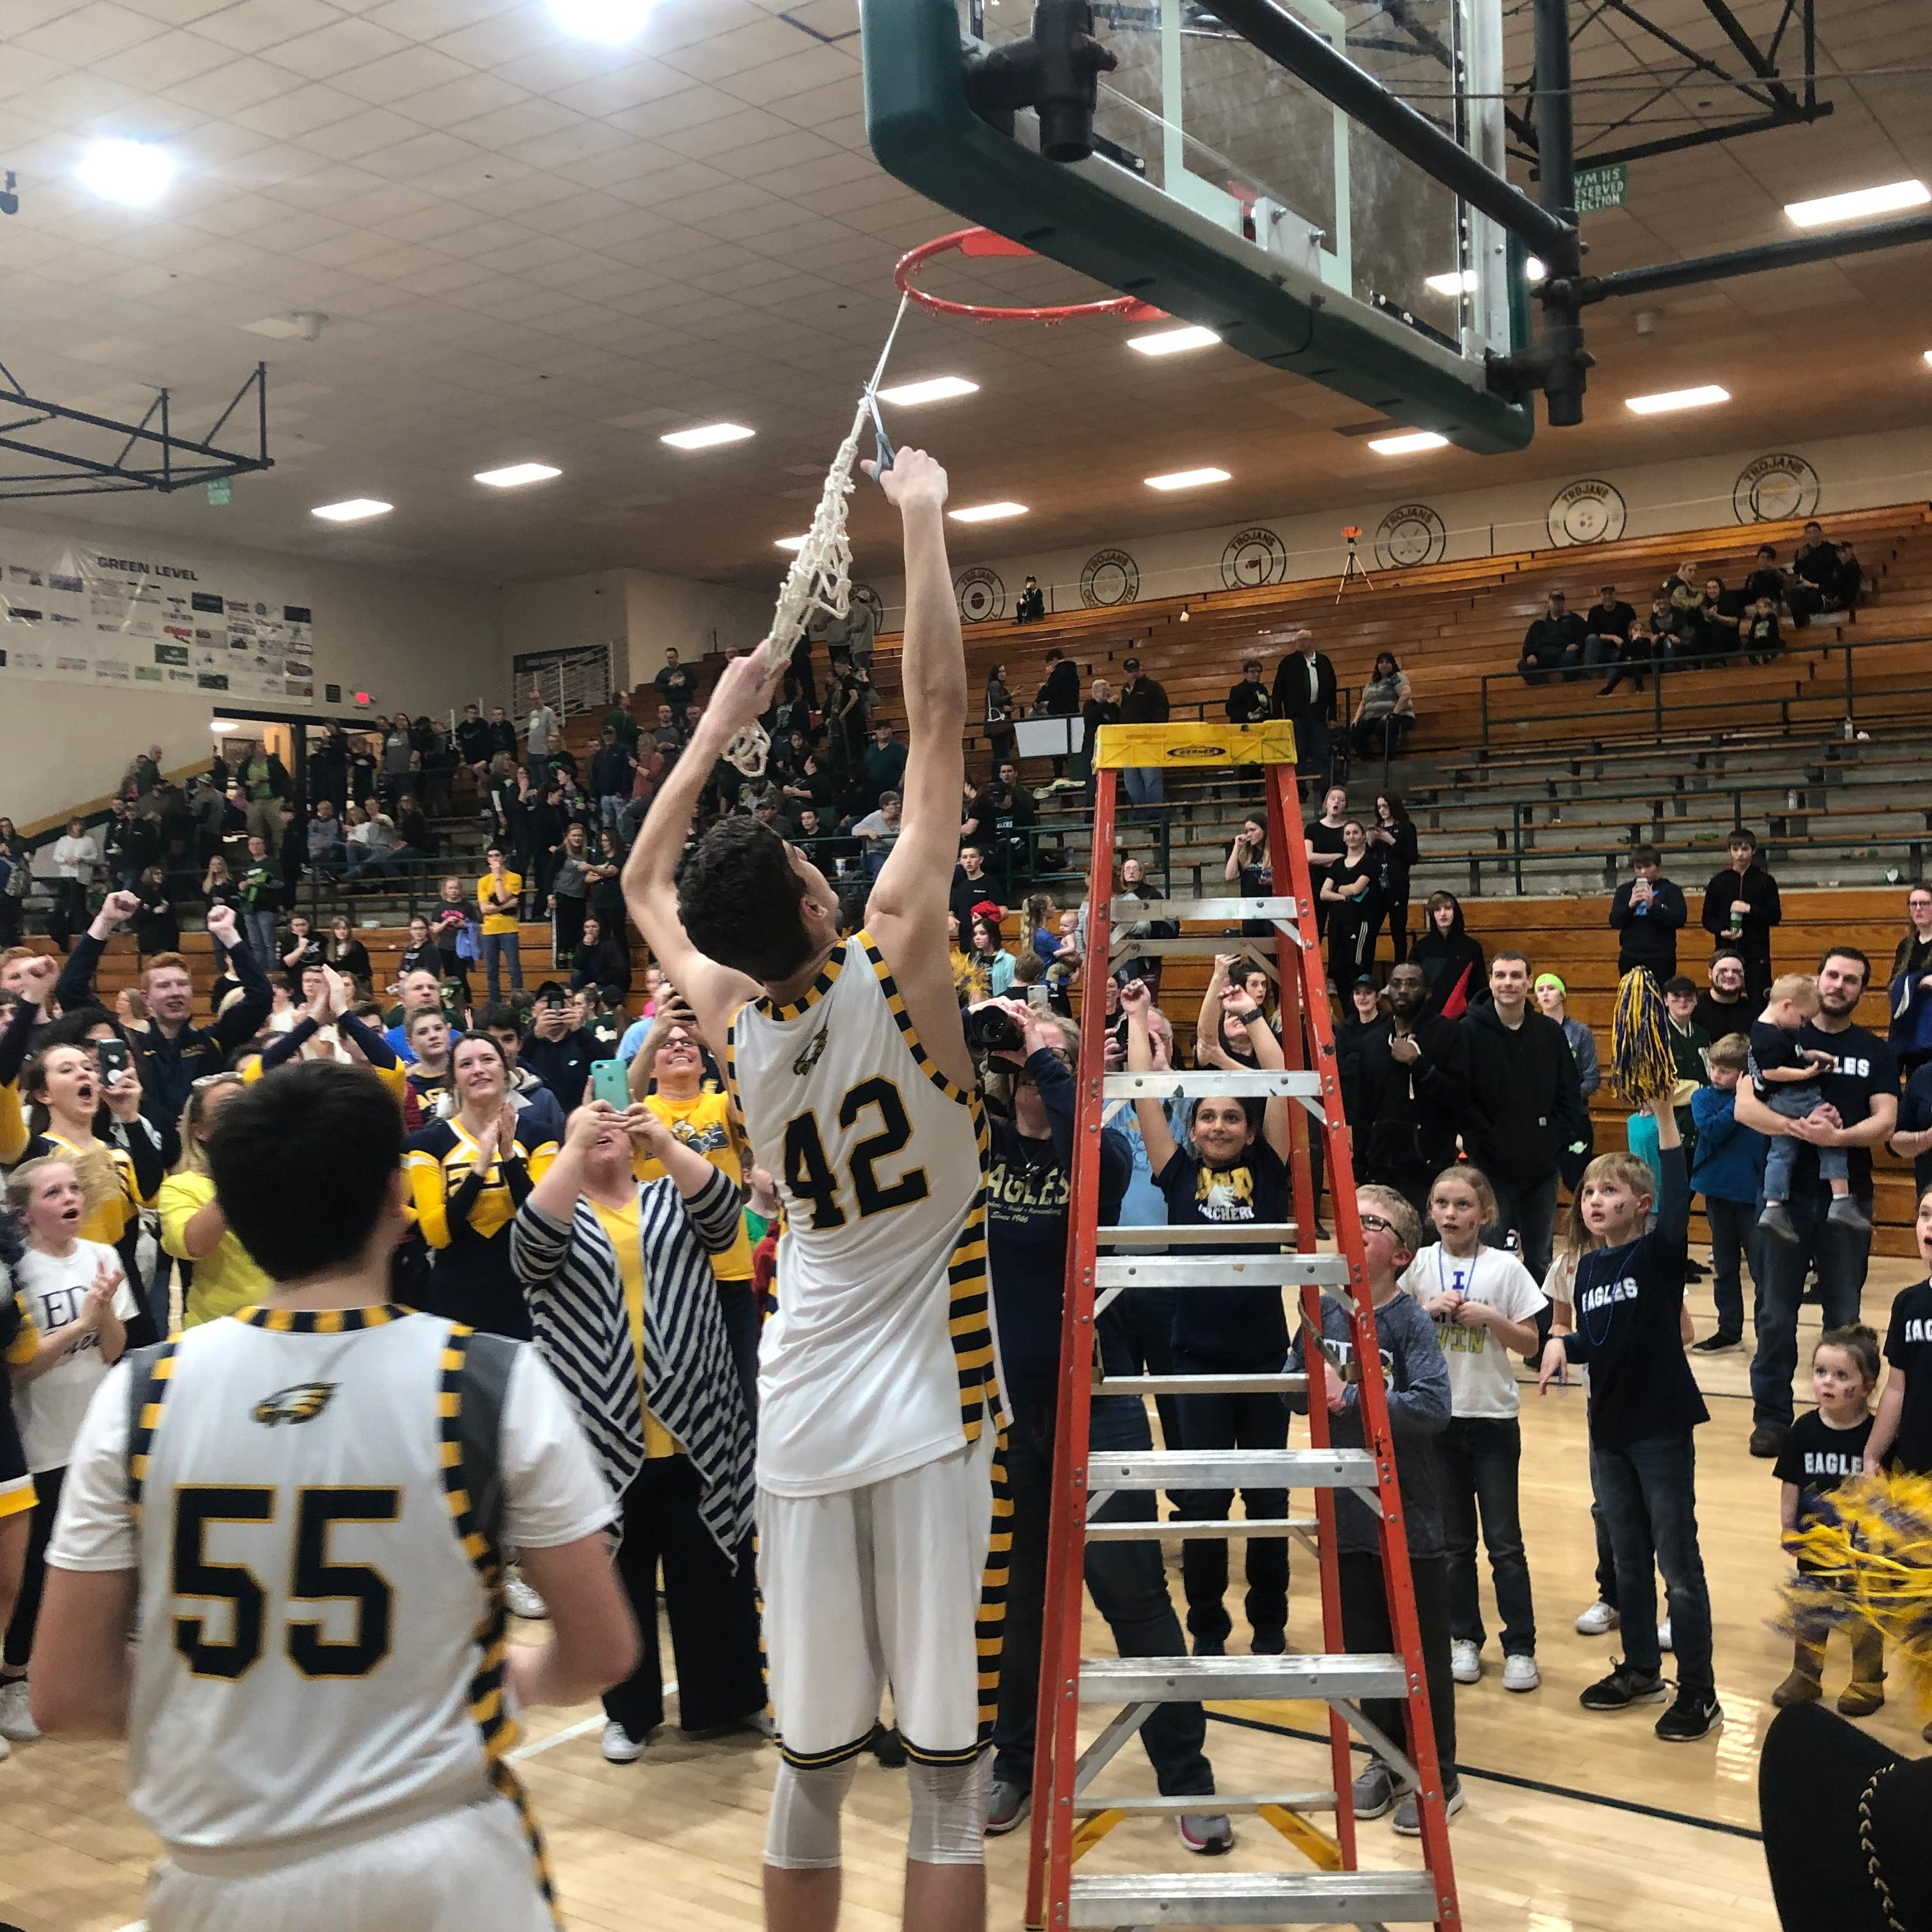 Day School tops Wood Memorial to win Class A sectional championship